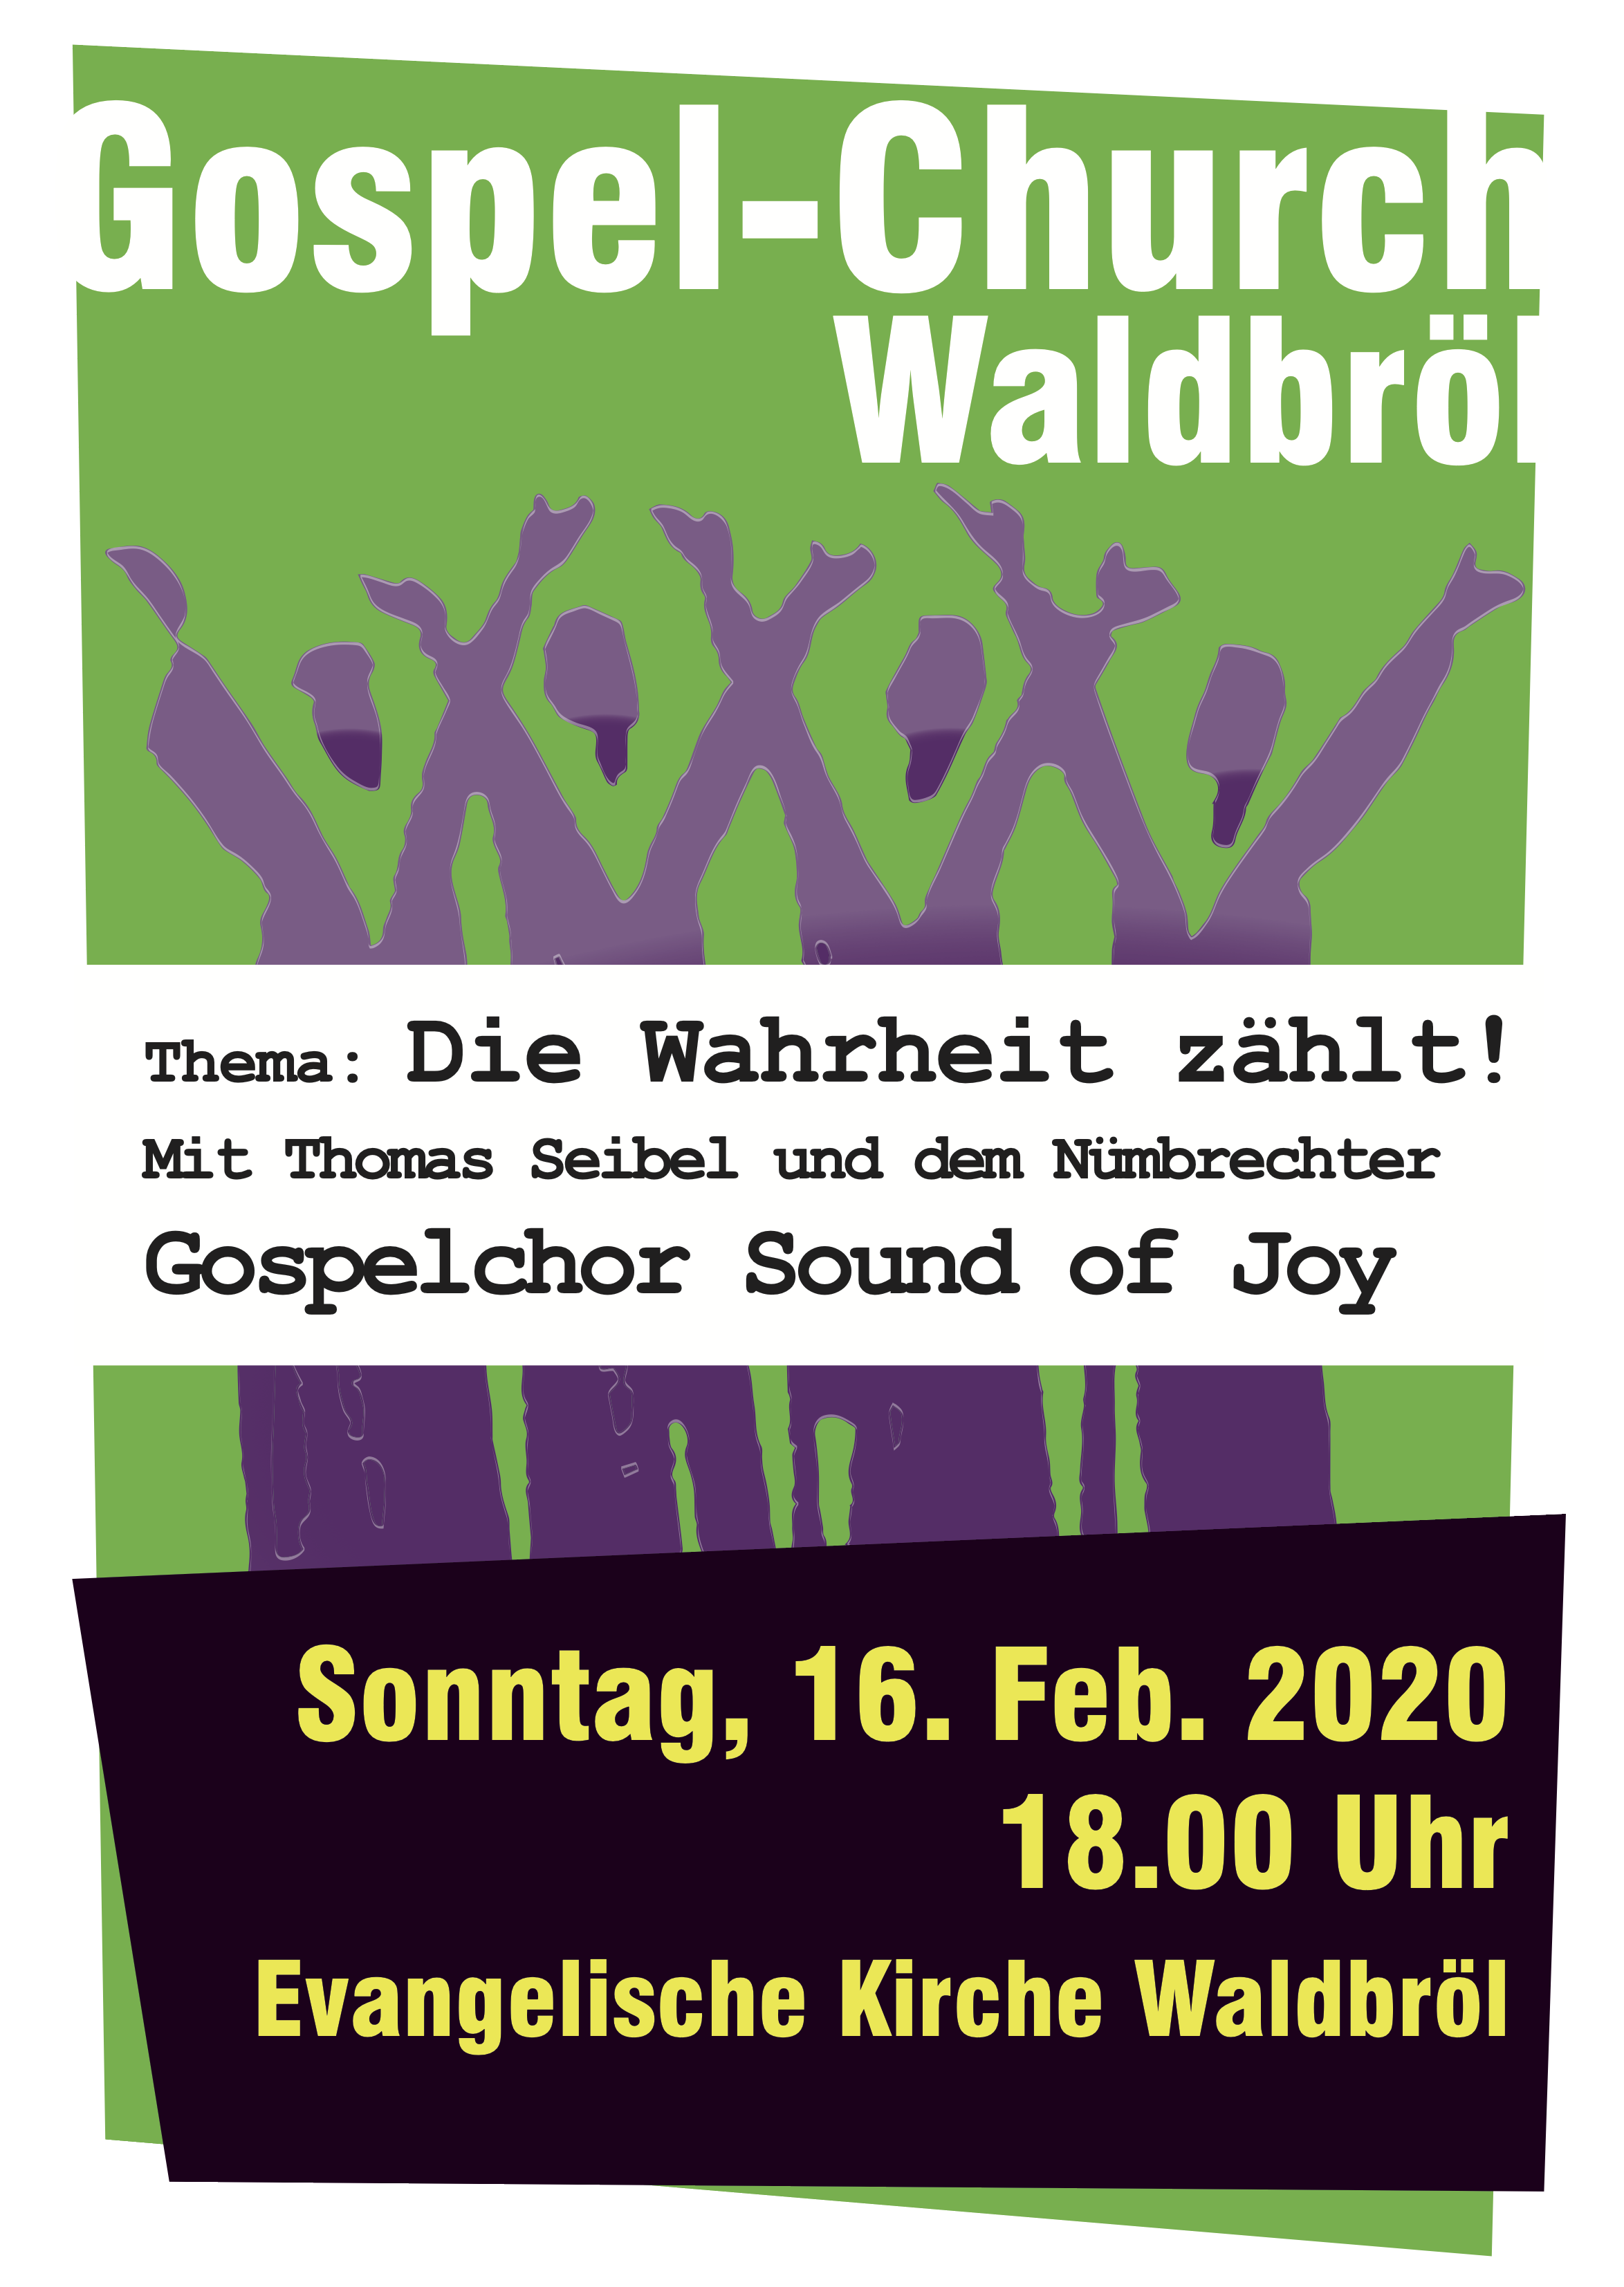 Gospel-Church im Februar